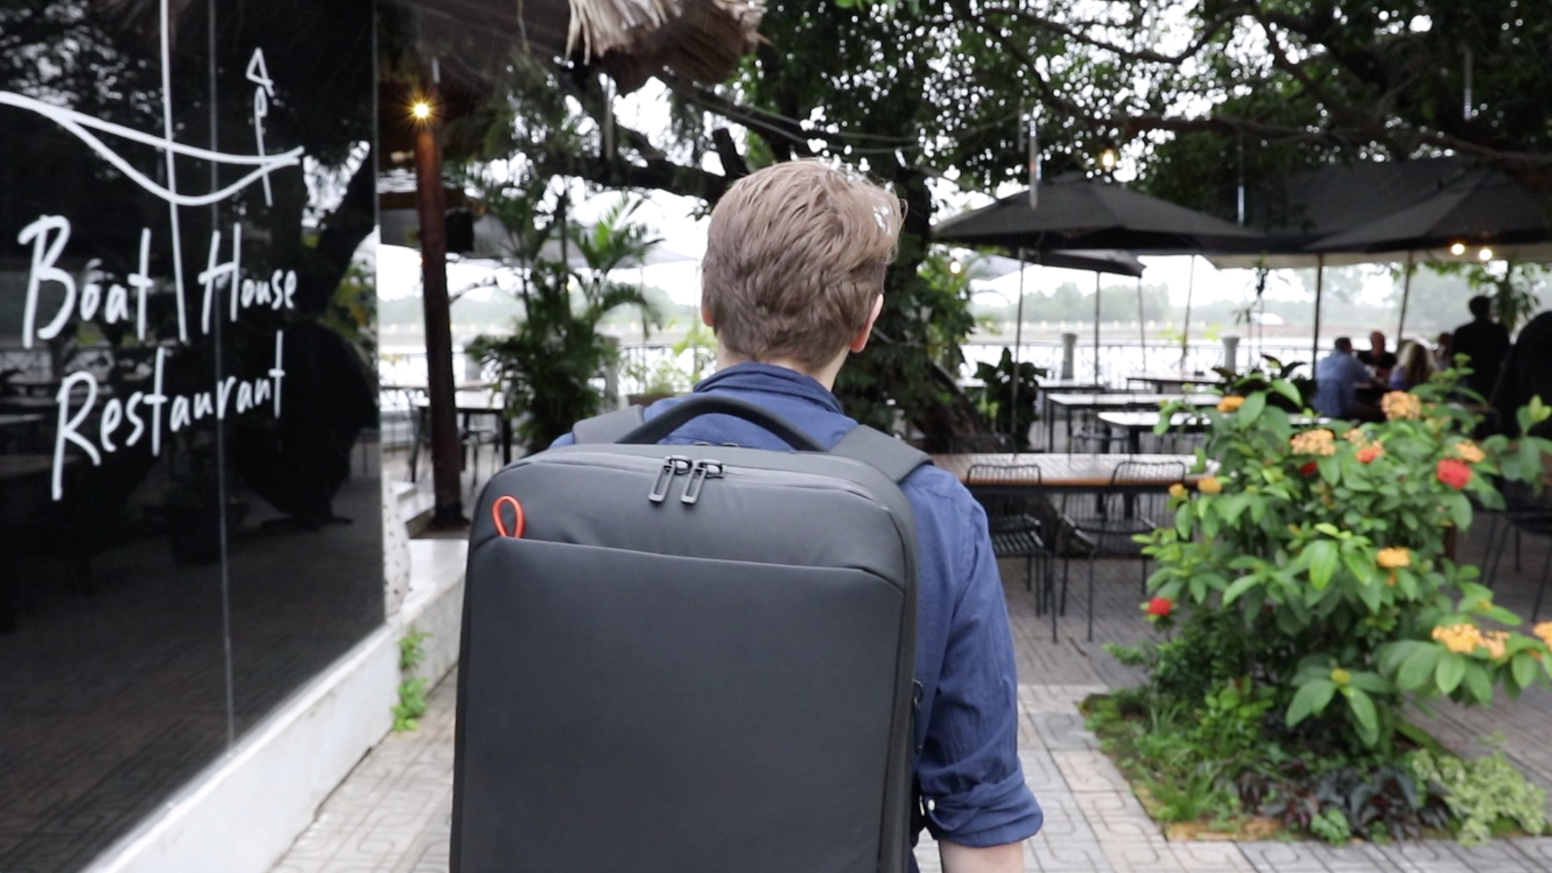 The carry-on for minimalist travelers - lightweight, waterproof & functional. Dutch design with strong focus on quality and finish.